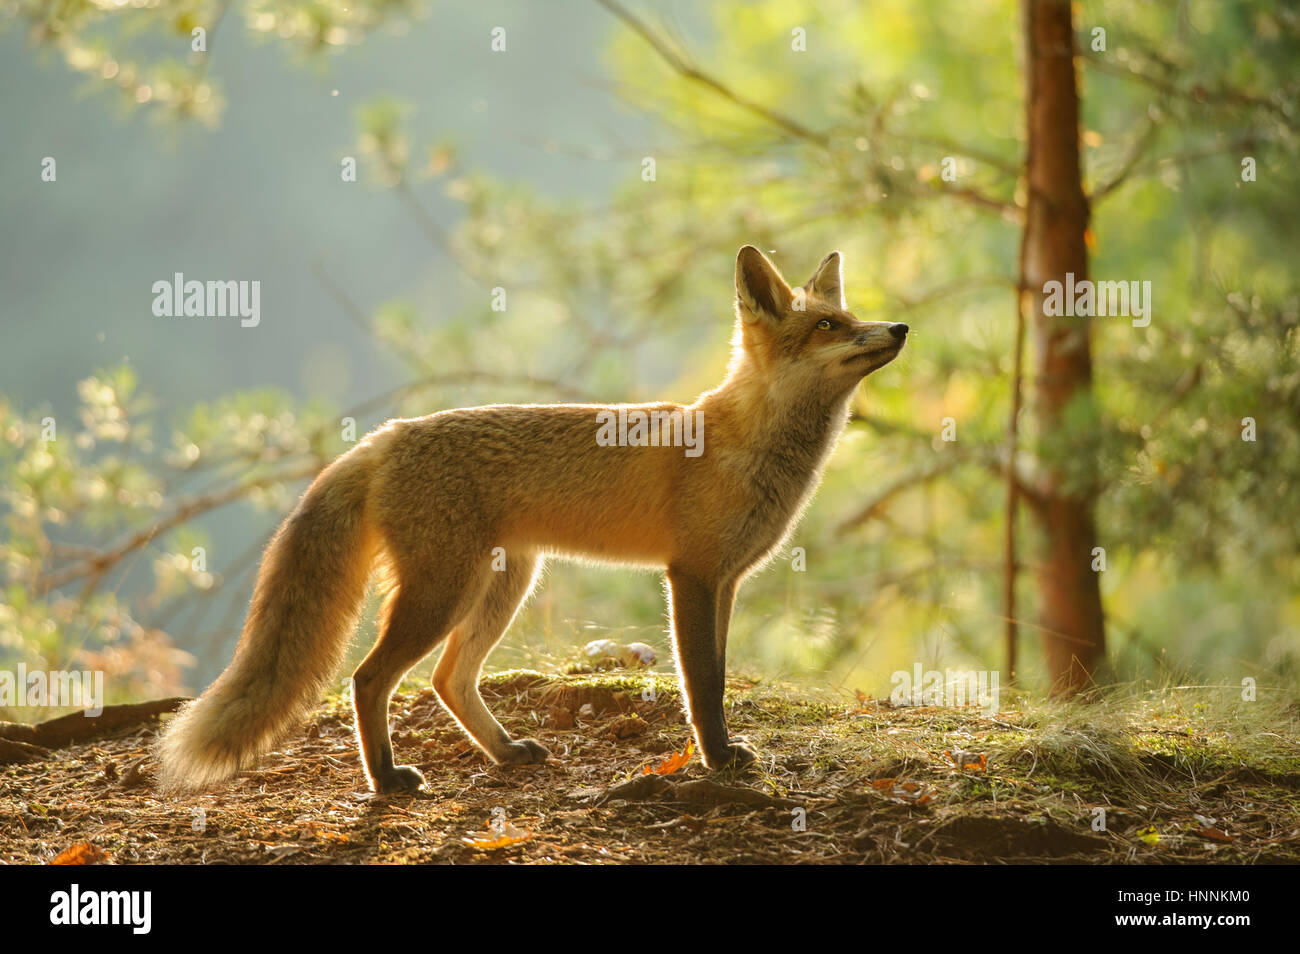 Red fox from side view in beauty backlight in autumn forest with tree in background - Stock Image